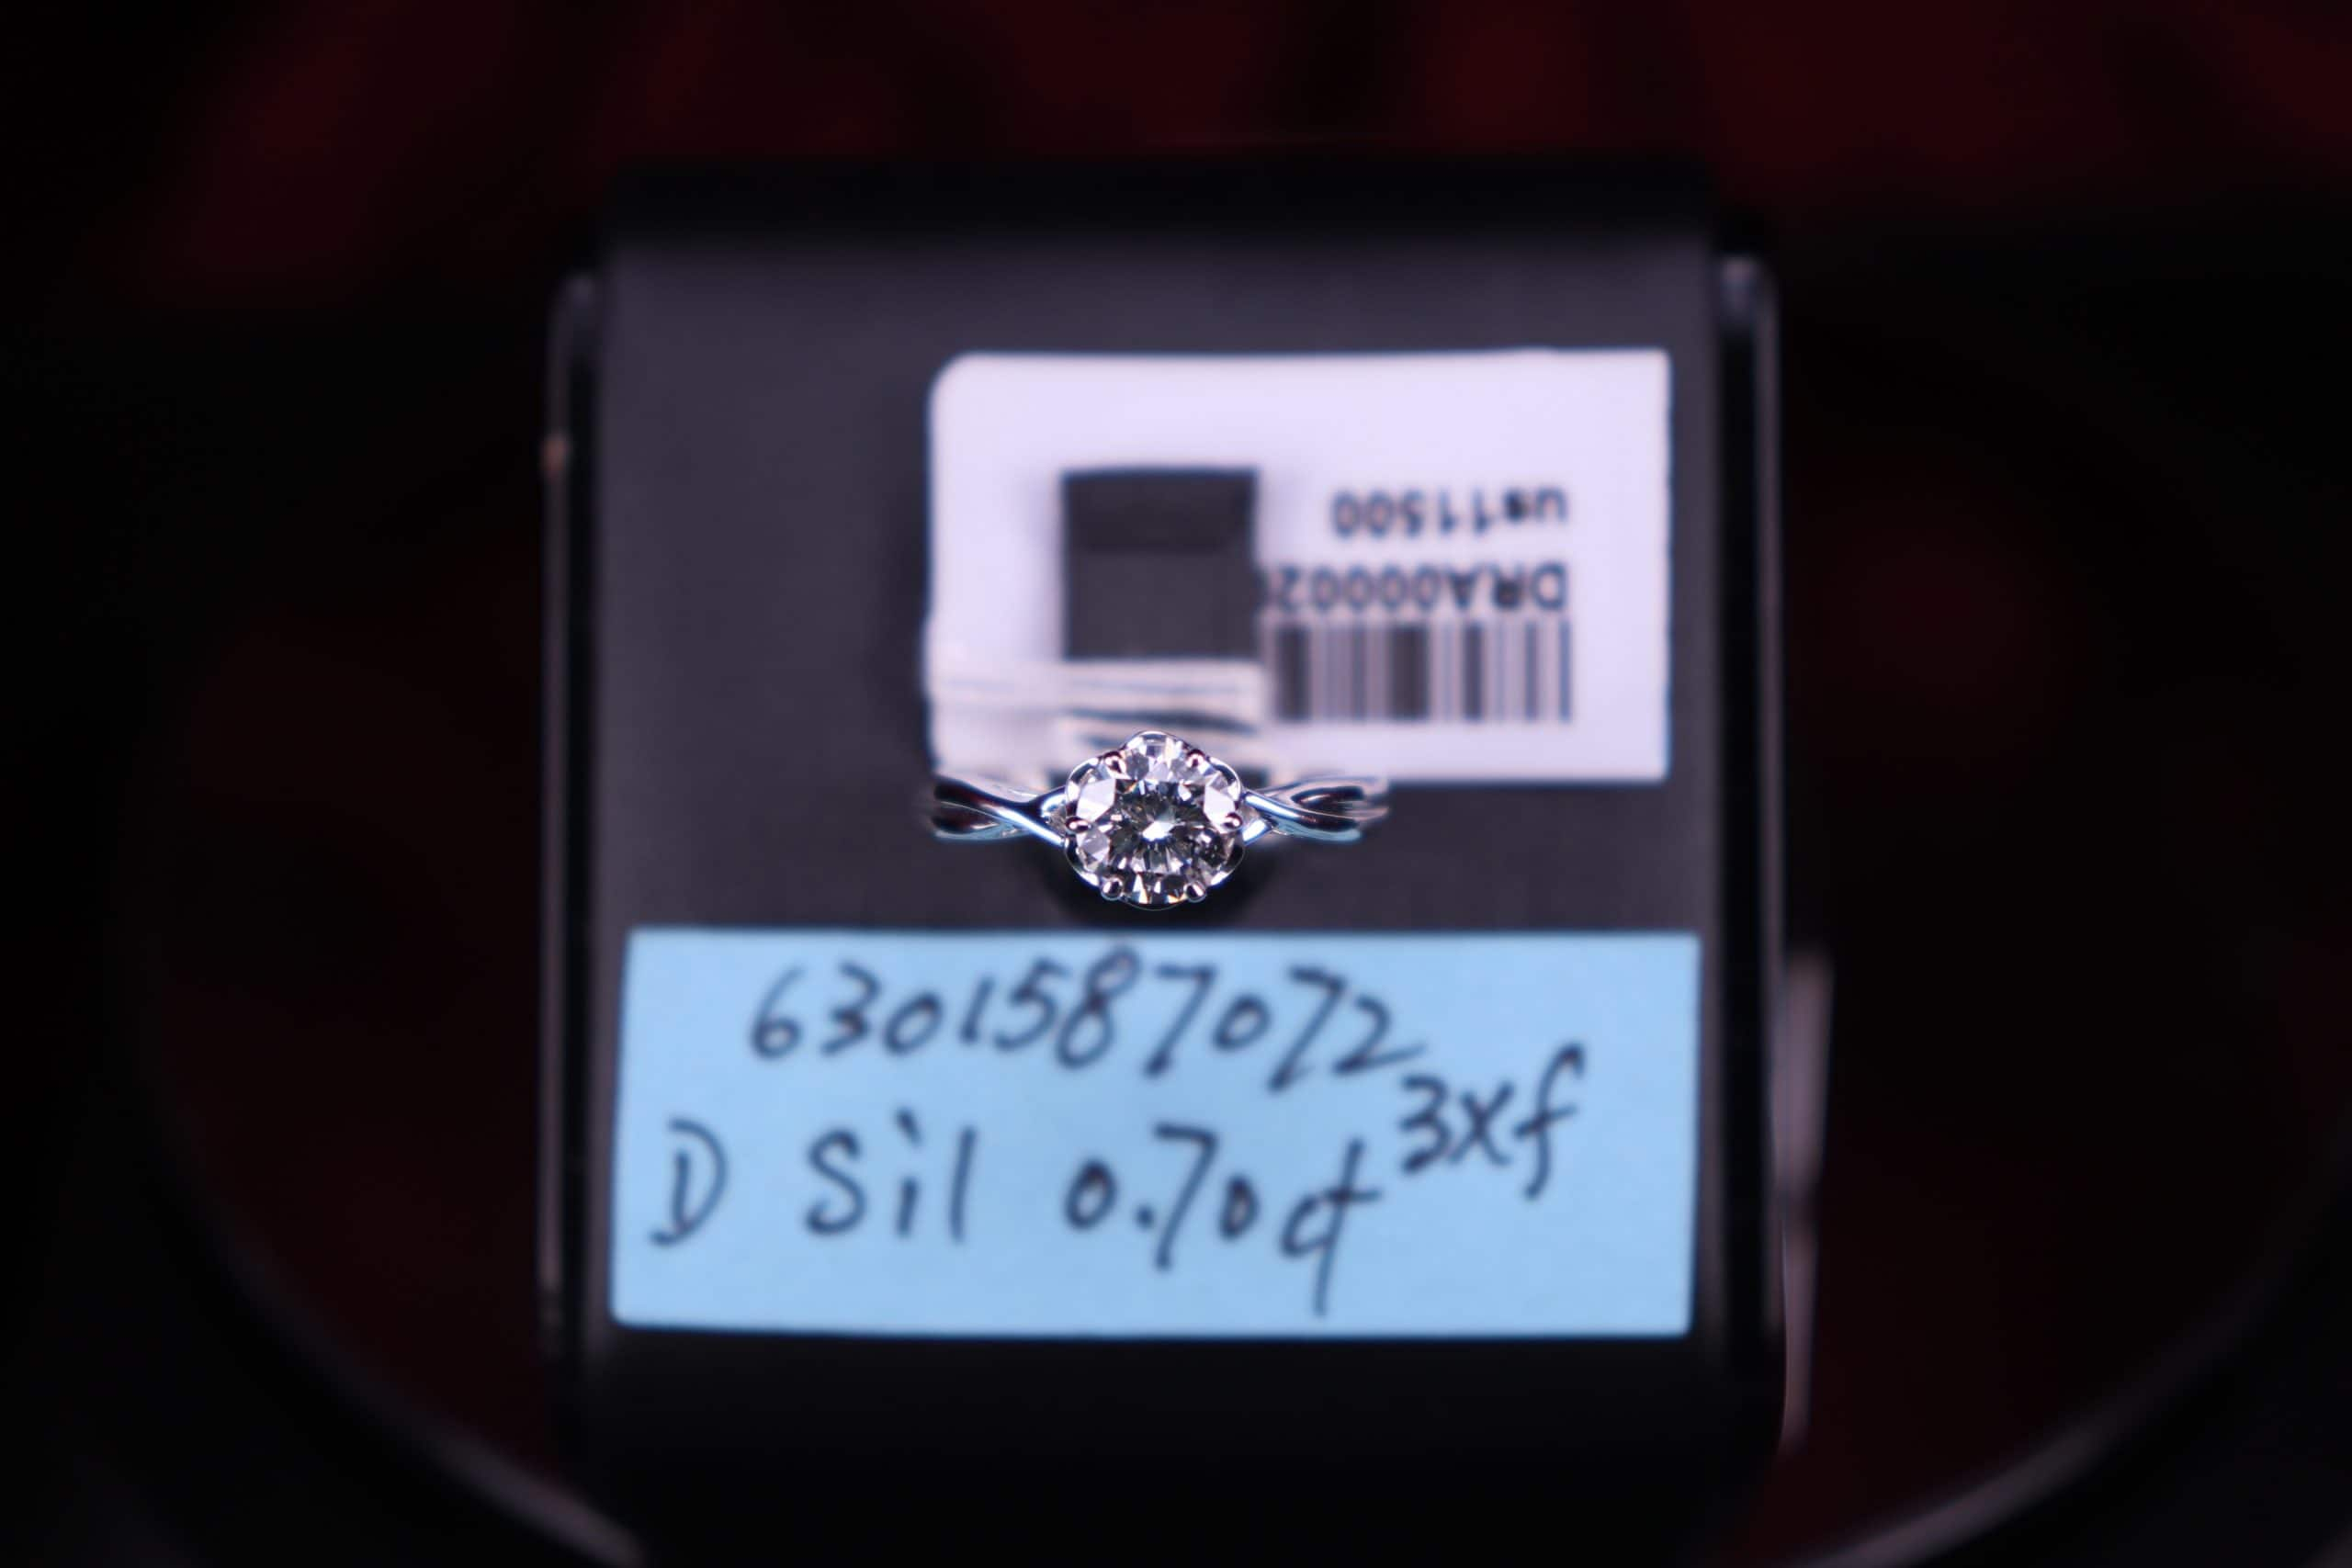 D SI1 0.70ct